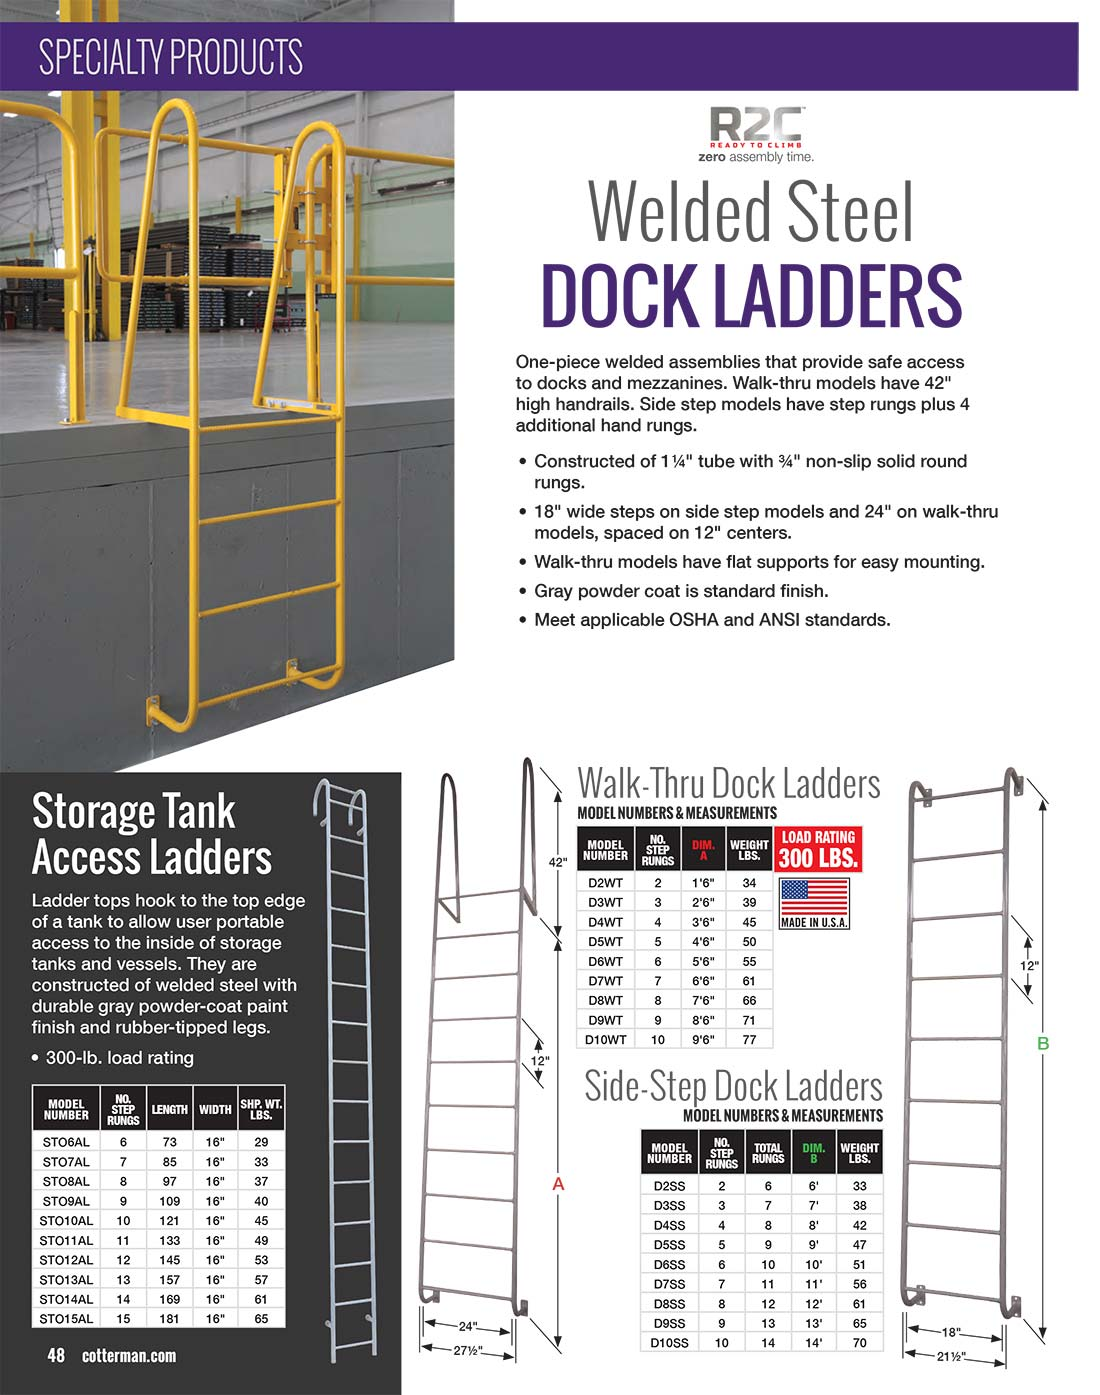 Cotterman Dock Ladders Technical Specs